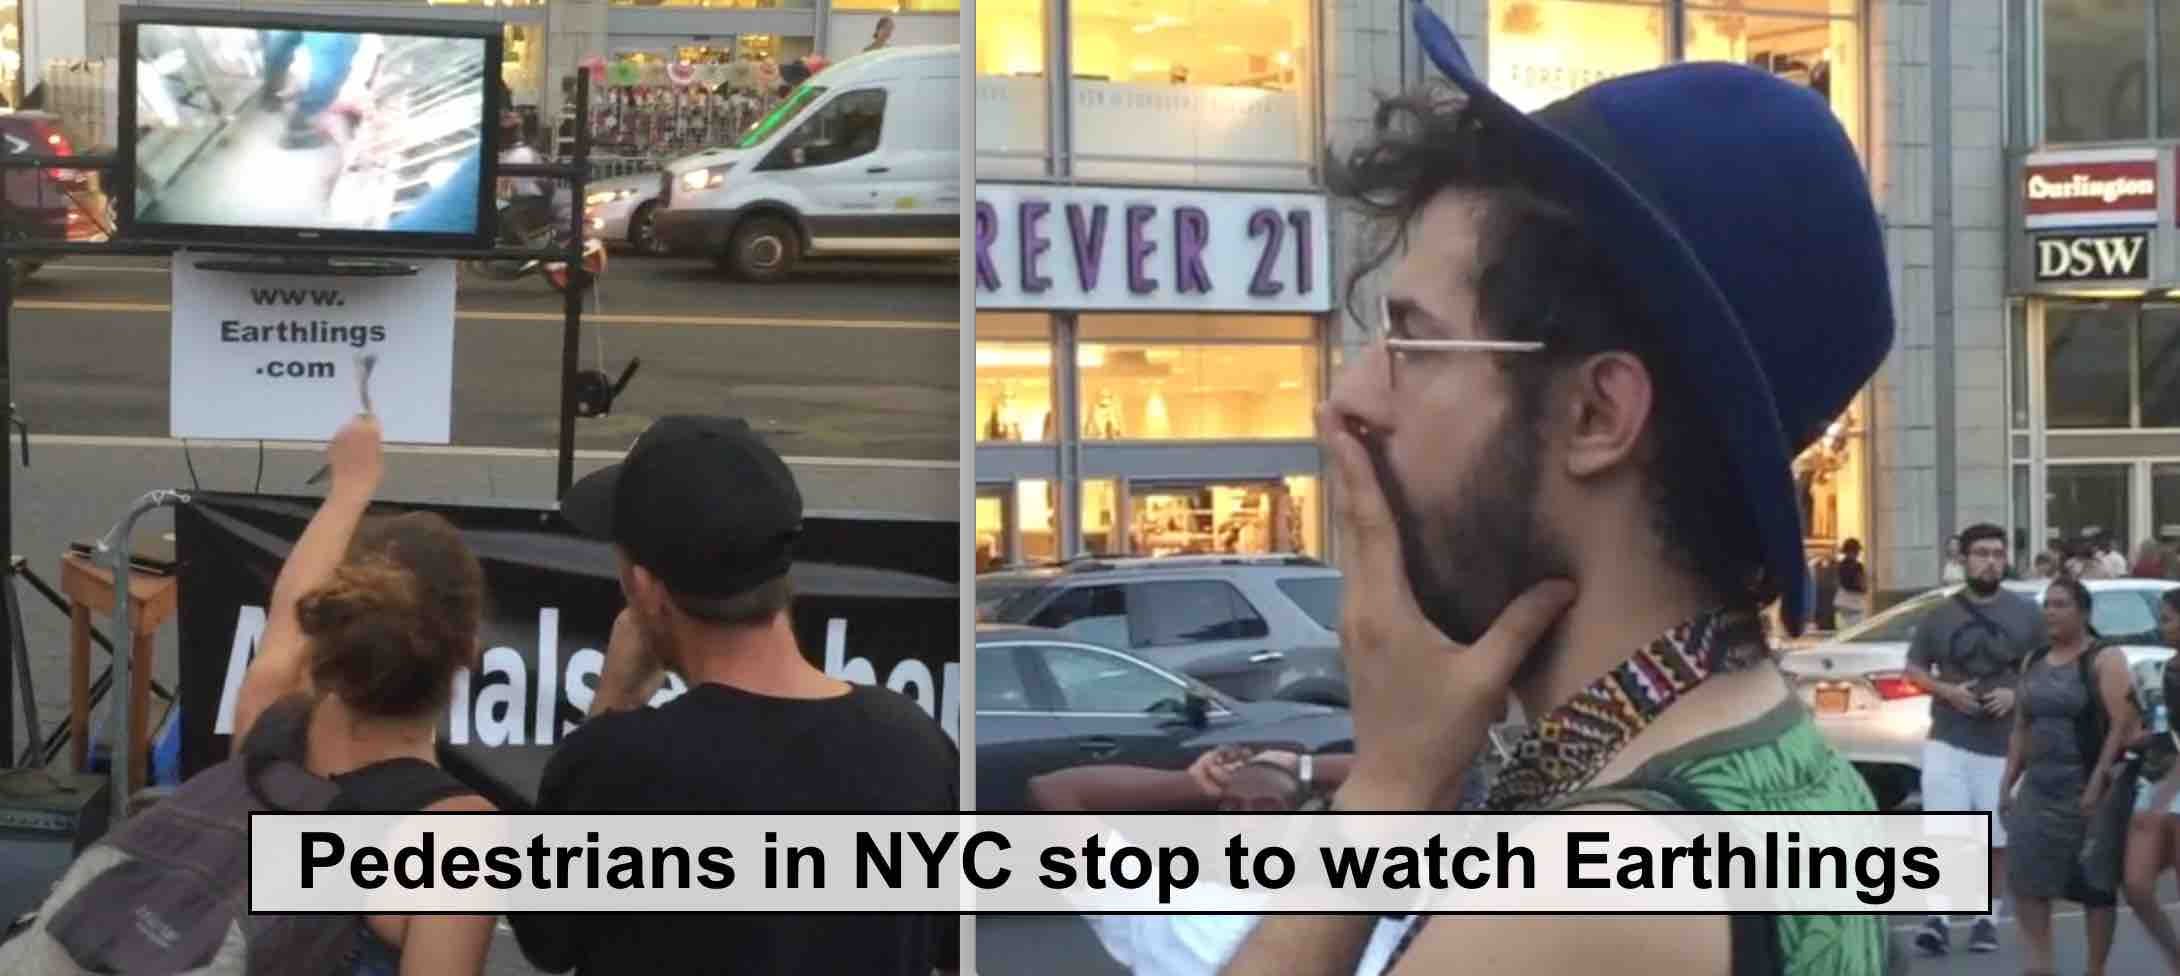 Pedestrians in NYC stop to watch the documentary film Earthlings